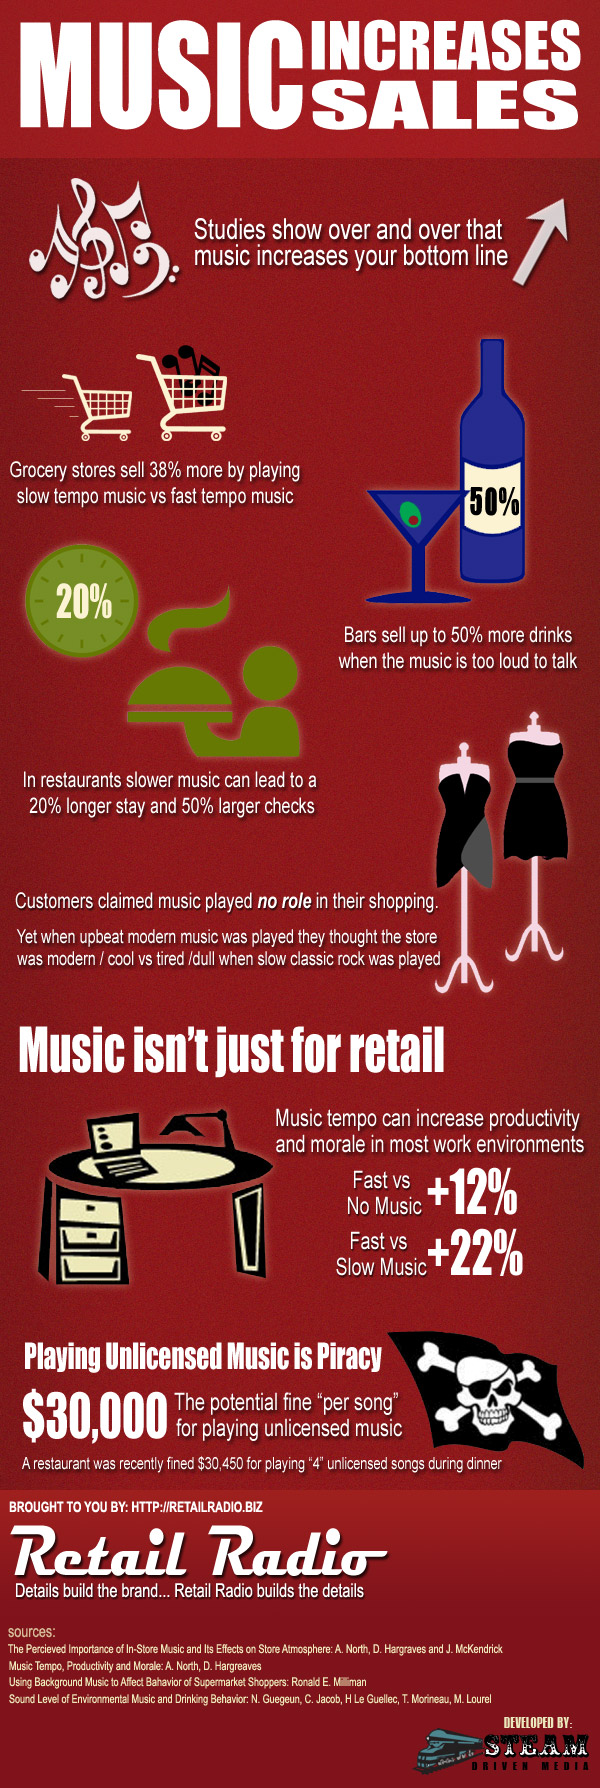 Music Increases Sales